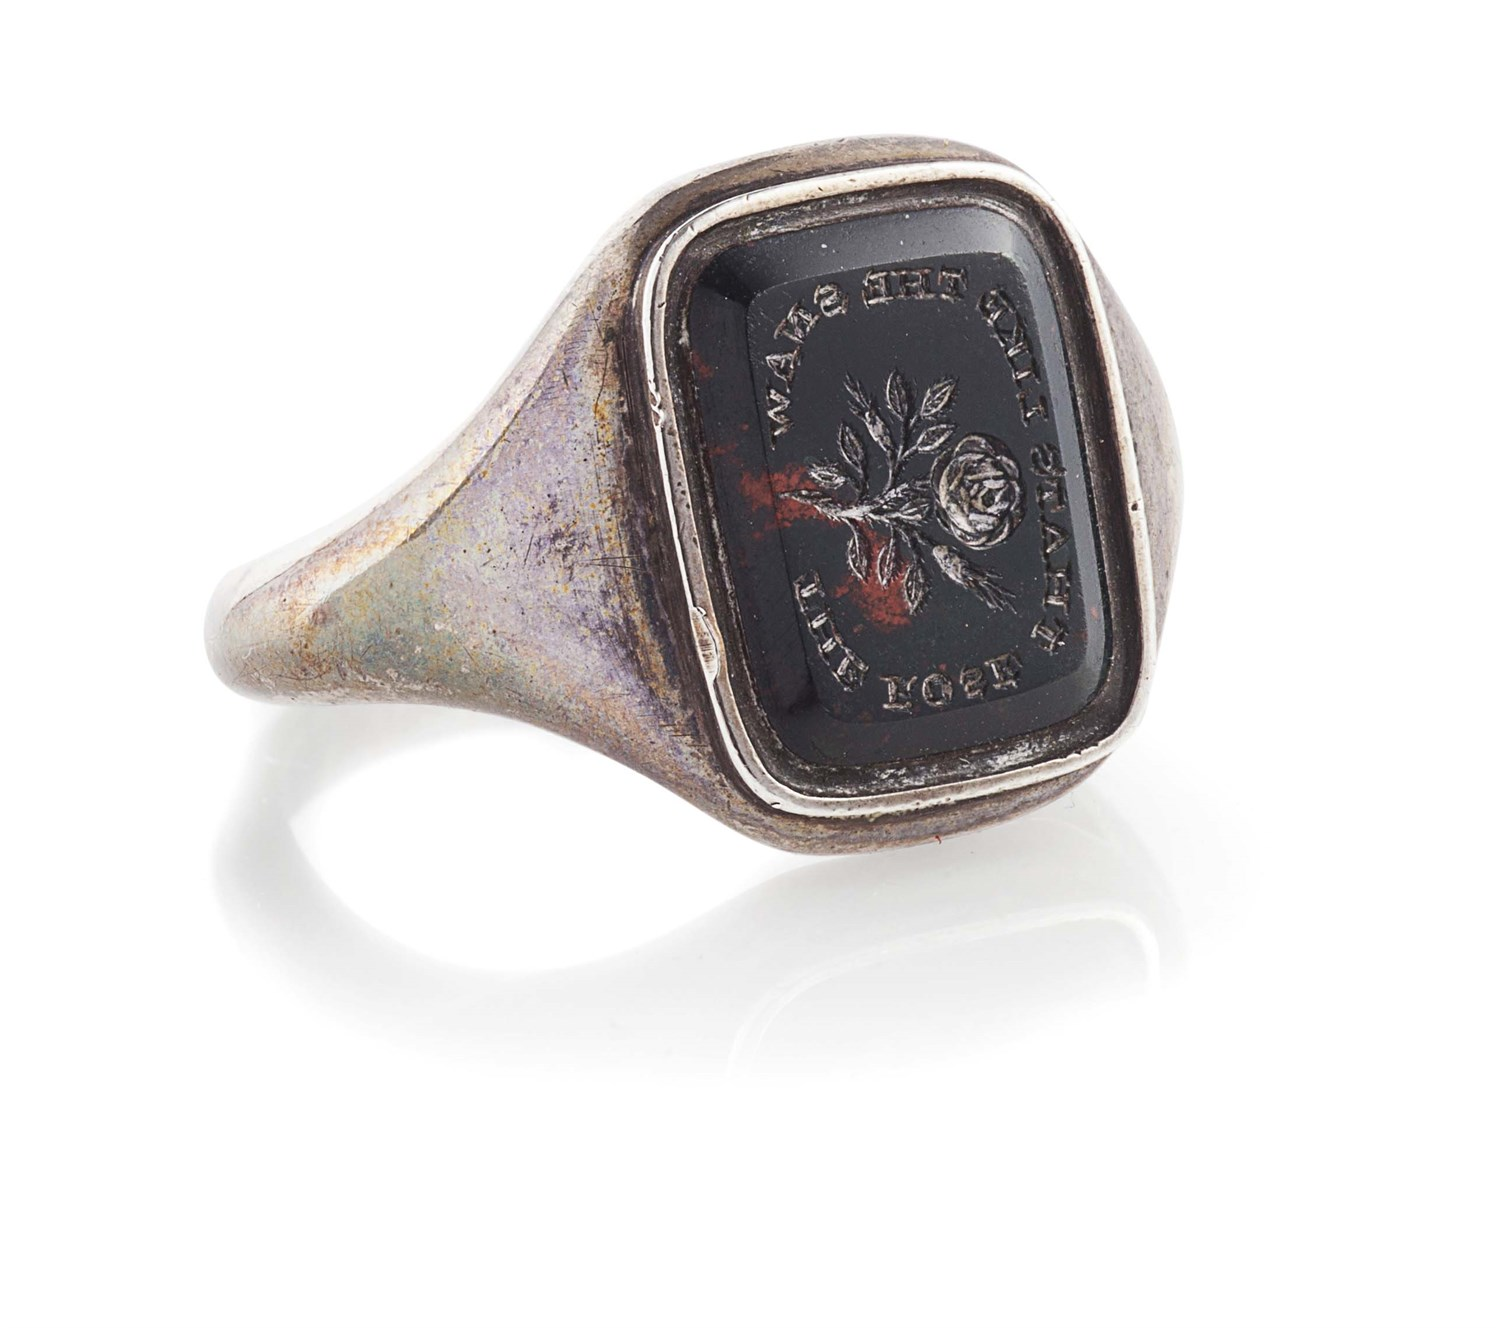 Lot 1-A late 18th century gentleman's Jacobite silver and bloodstone supporter's ring